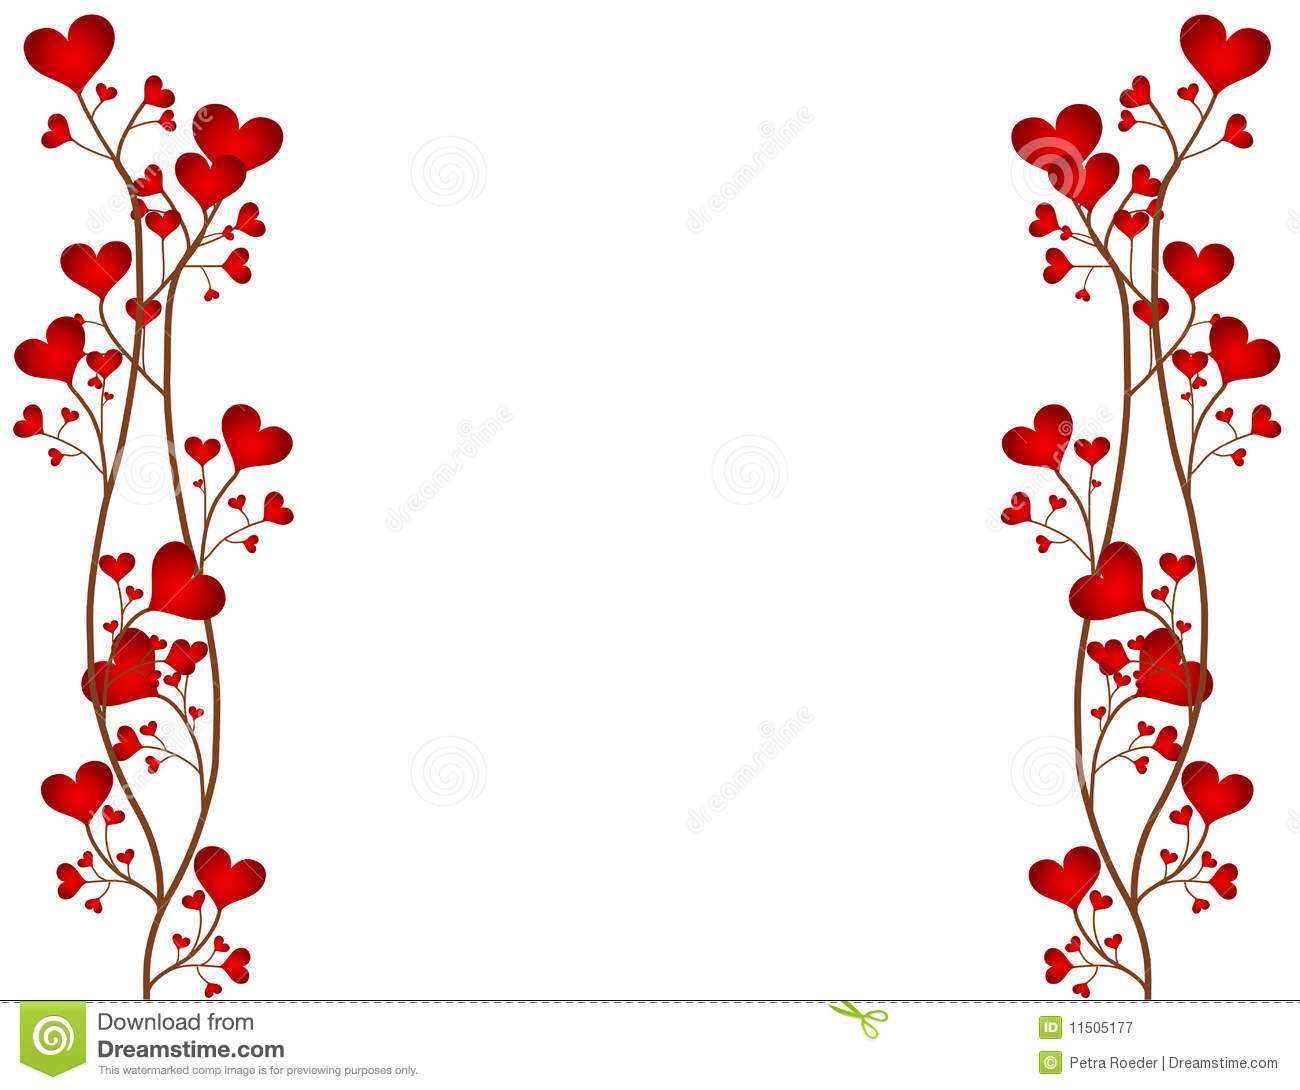 Love Flower Frame Royalty Free Stock Photography - Image: 11505177